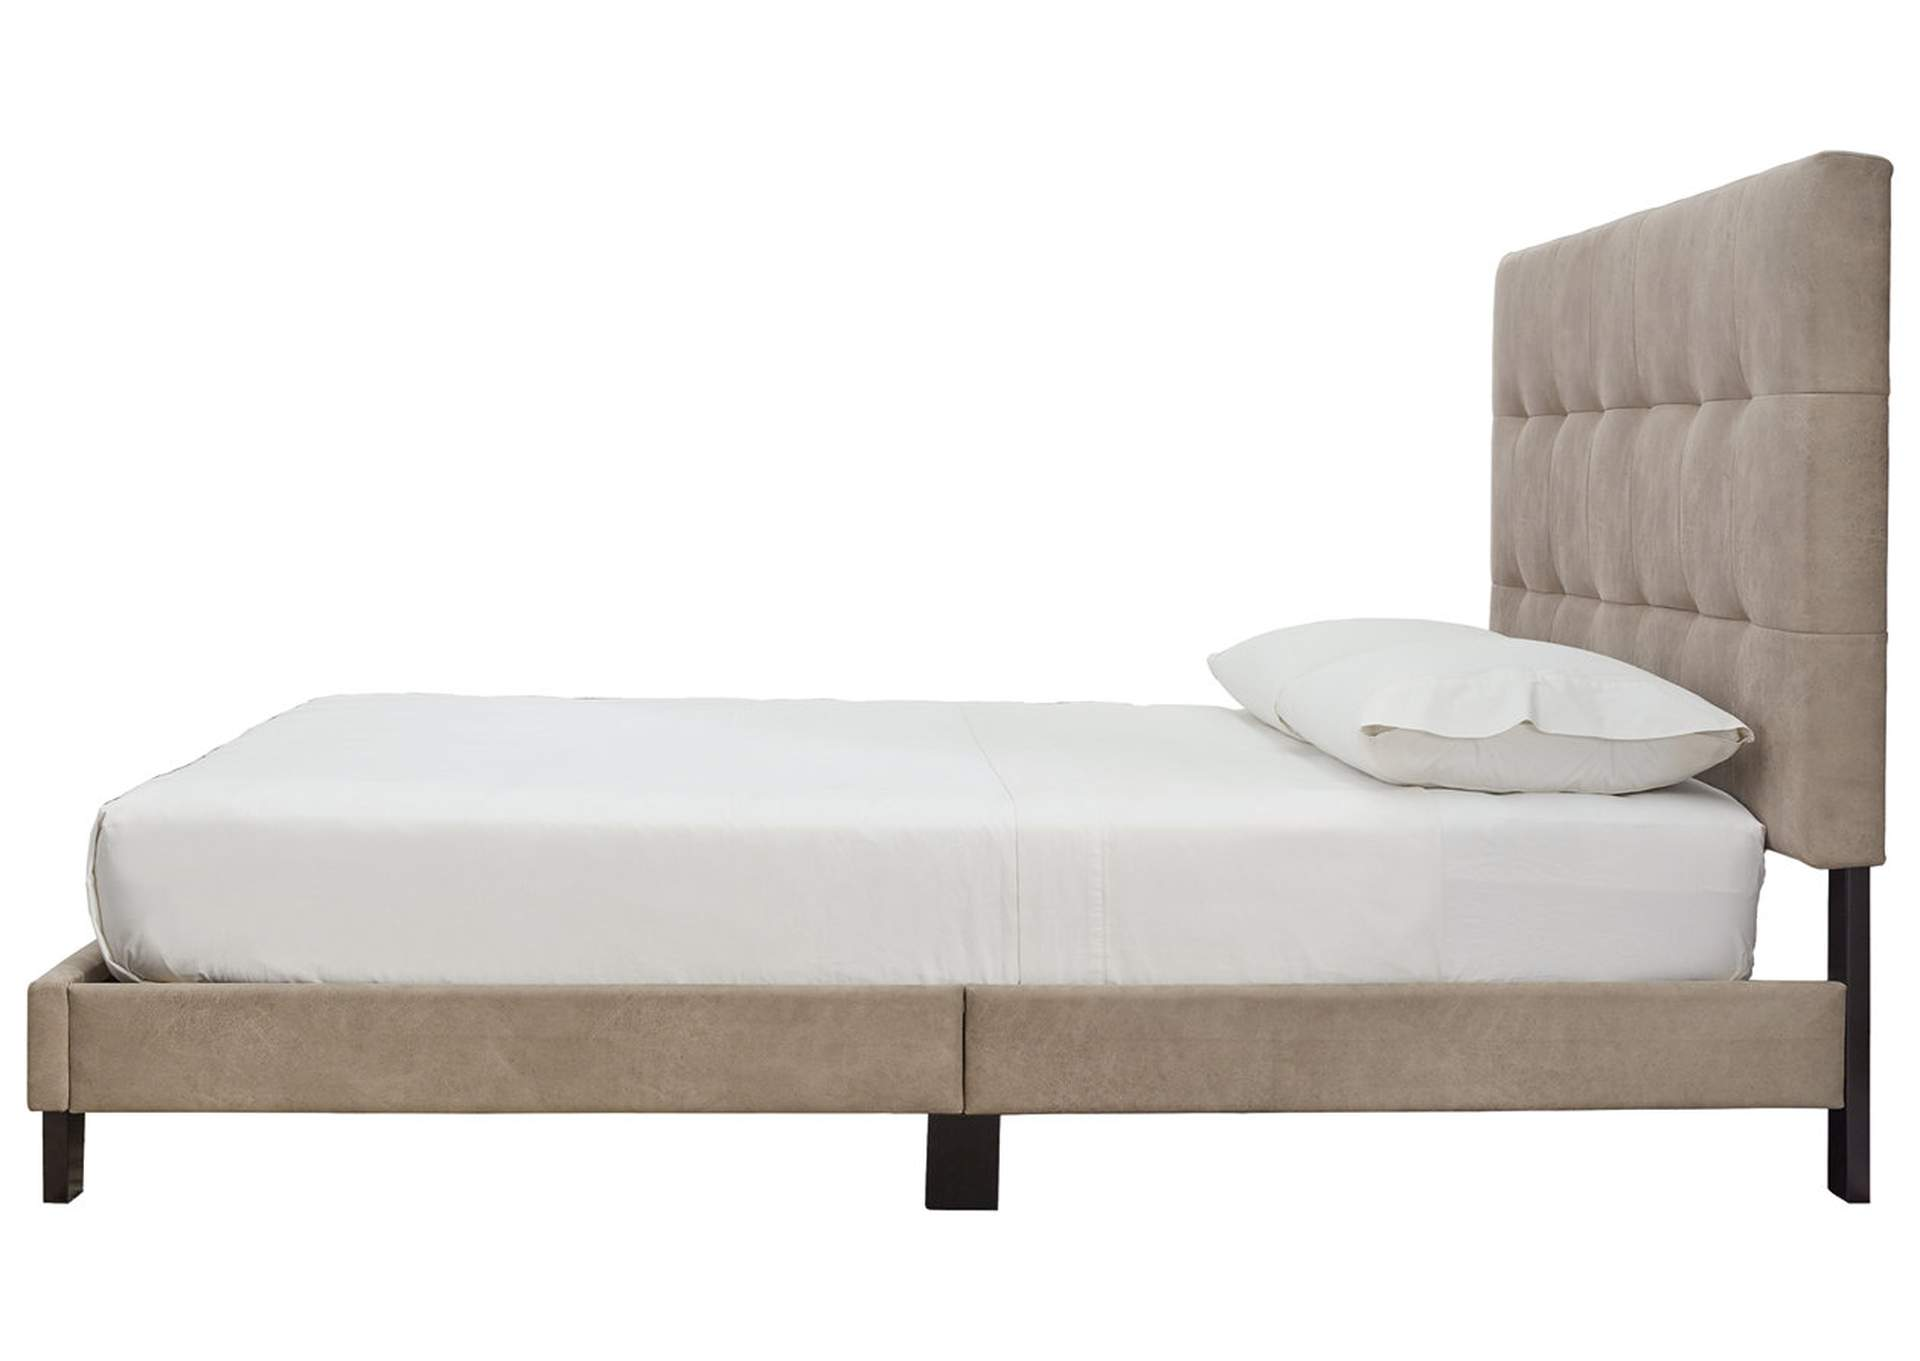 Adelloni Queen Upholstered Bed,Signature Design By Ashley